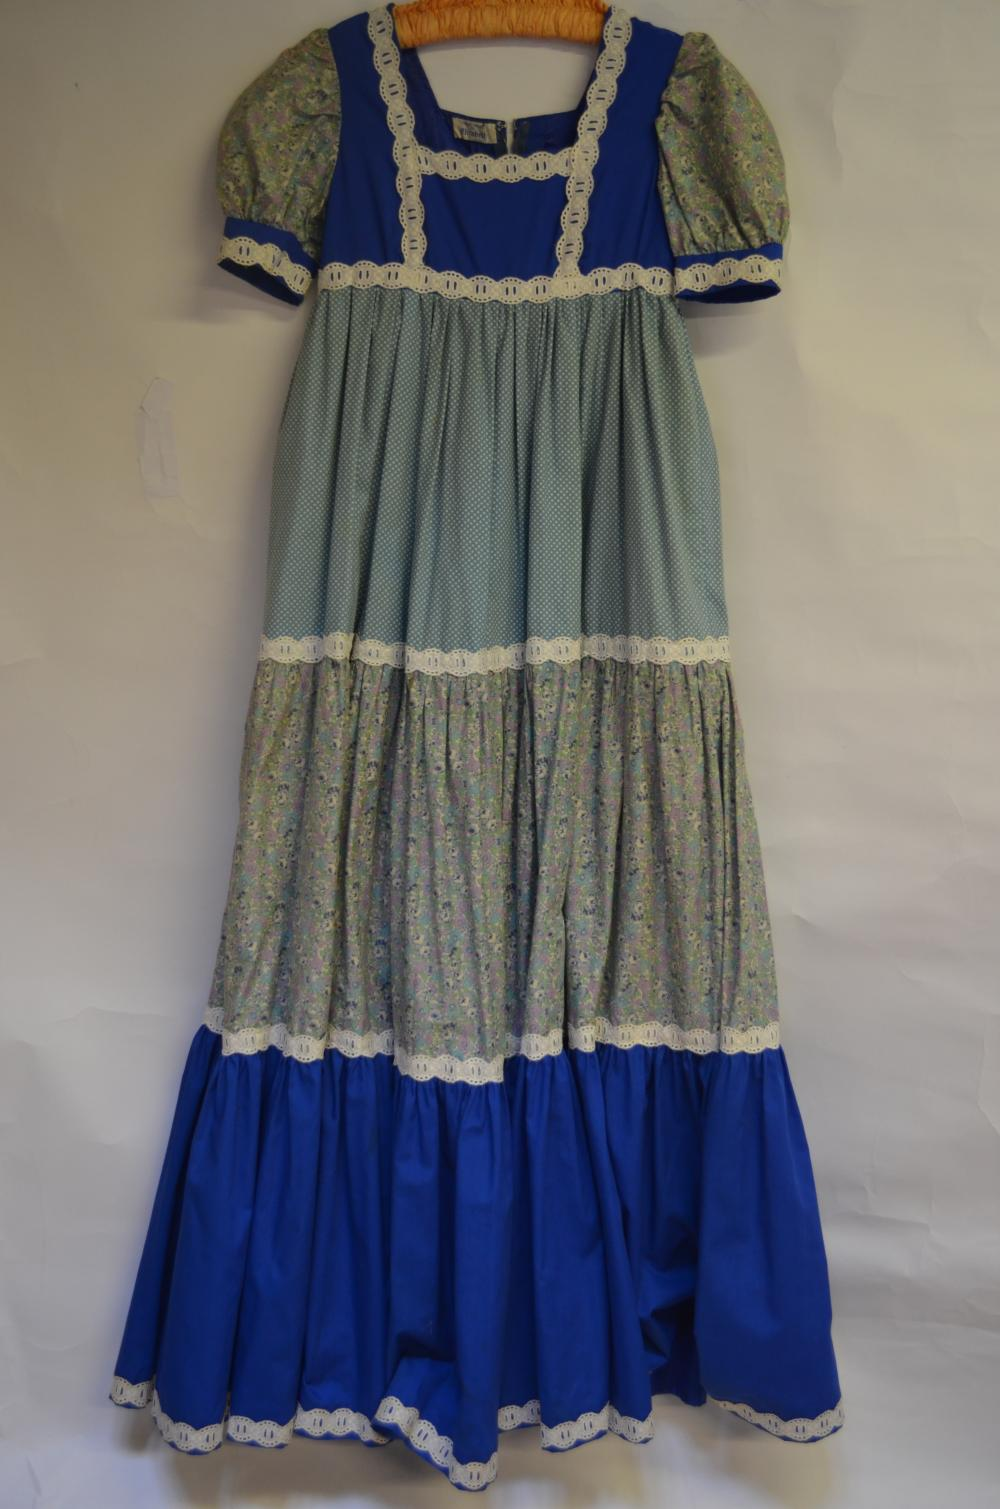 1970s ladies' clothing